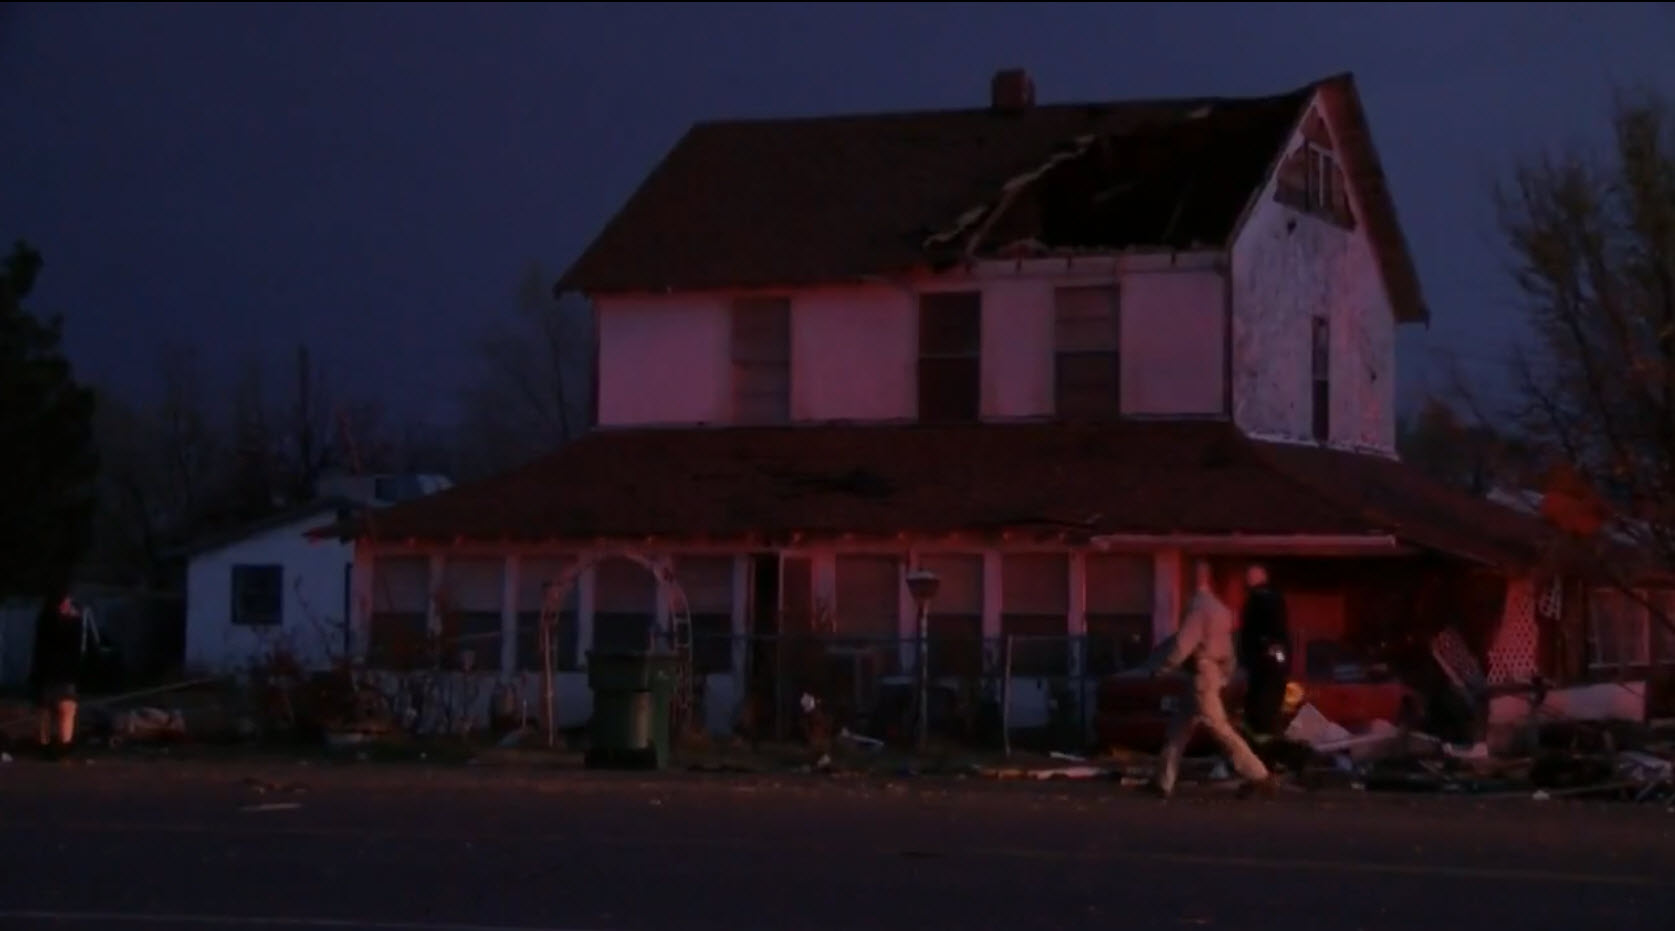 Severe storms, tornadoes cause major damage in southeast New Mexico town